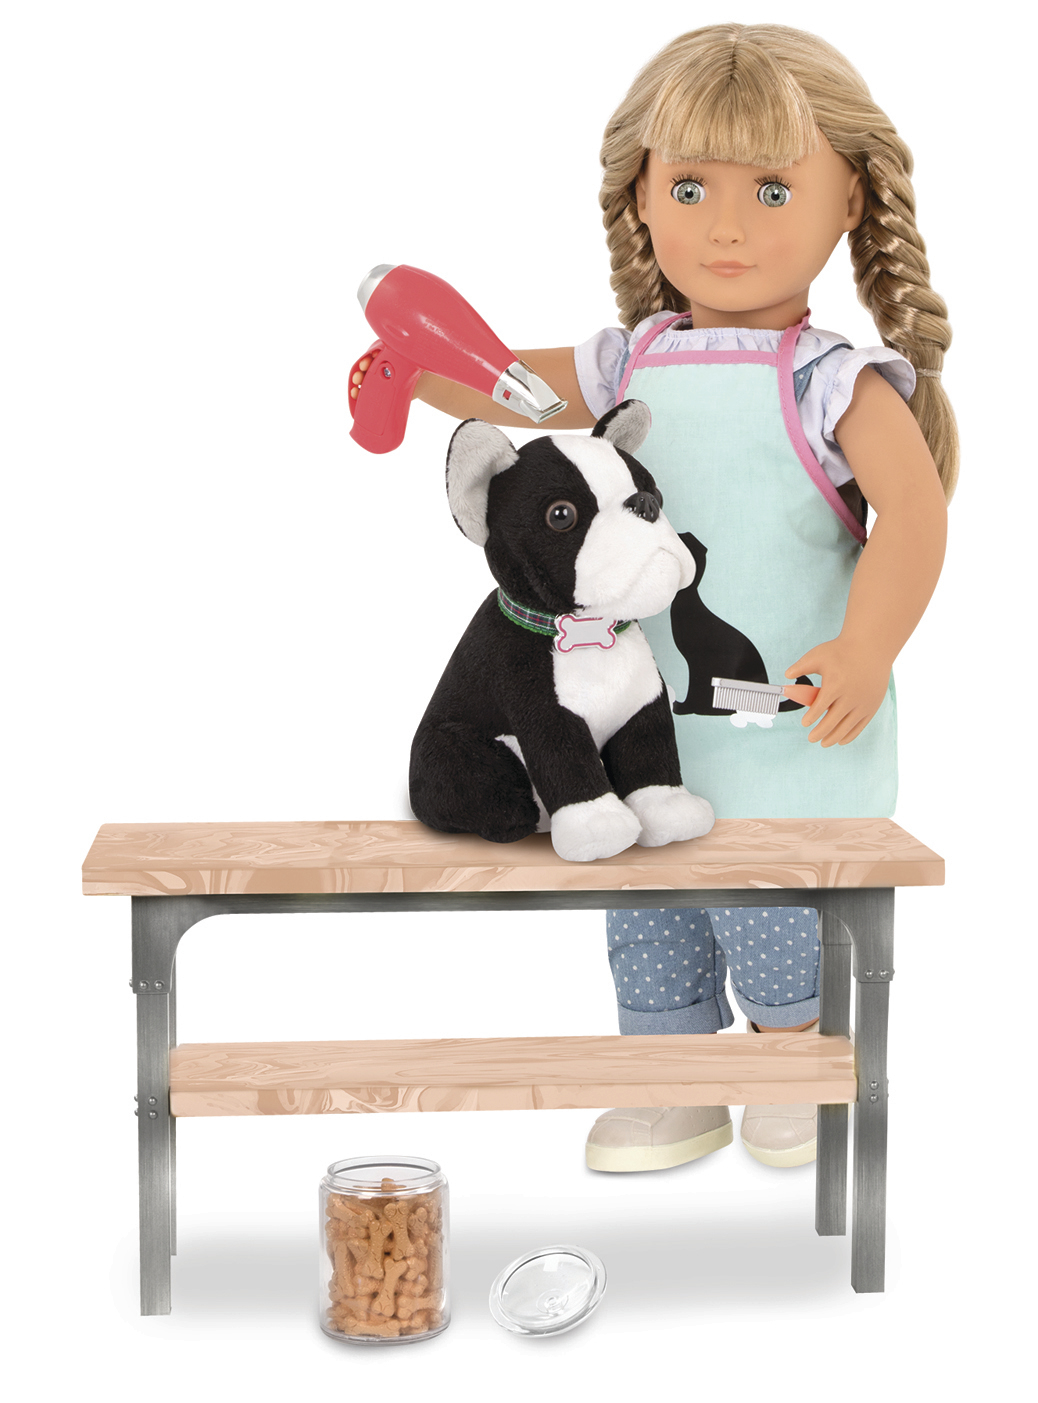 Our Generation: Home Accessory Set - Pet Grooming Salon image